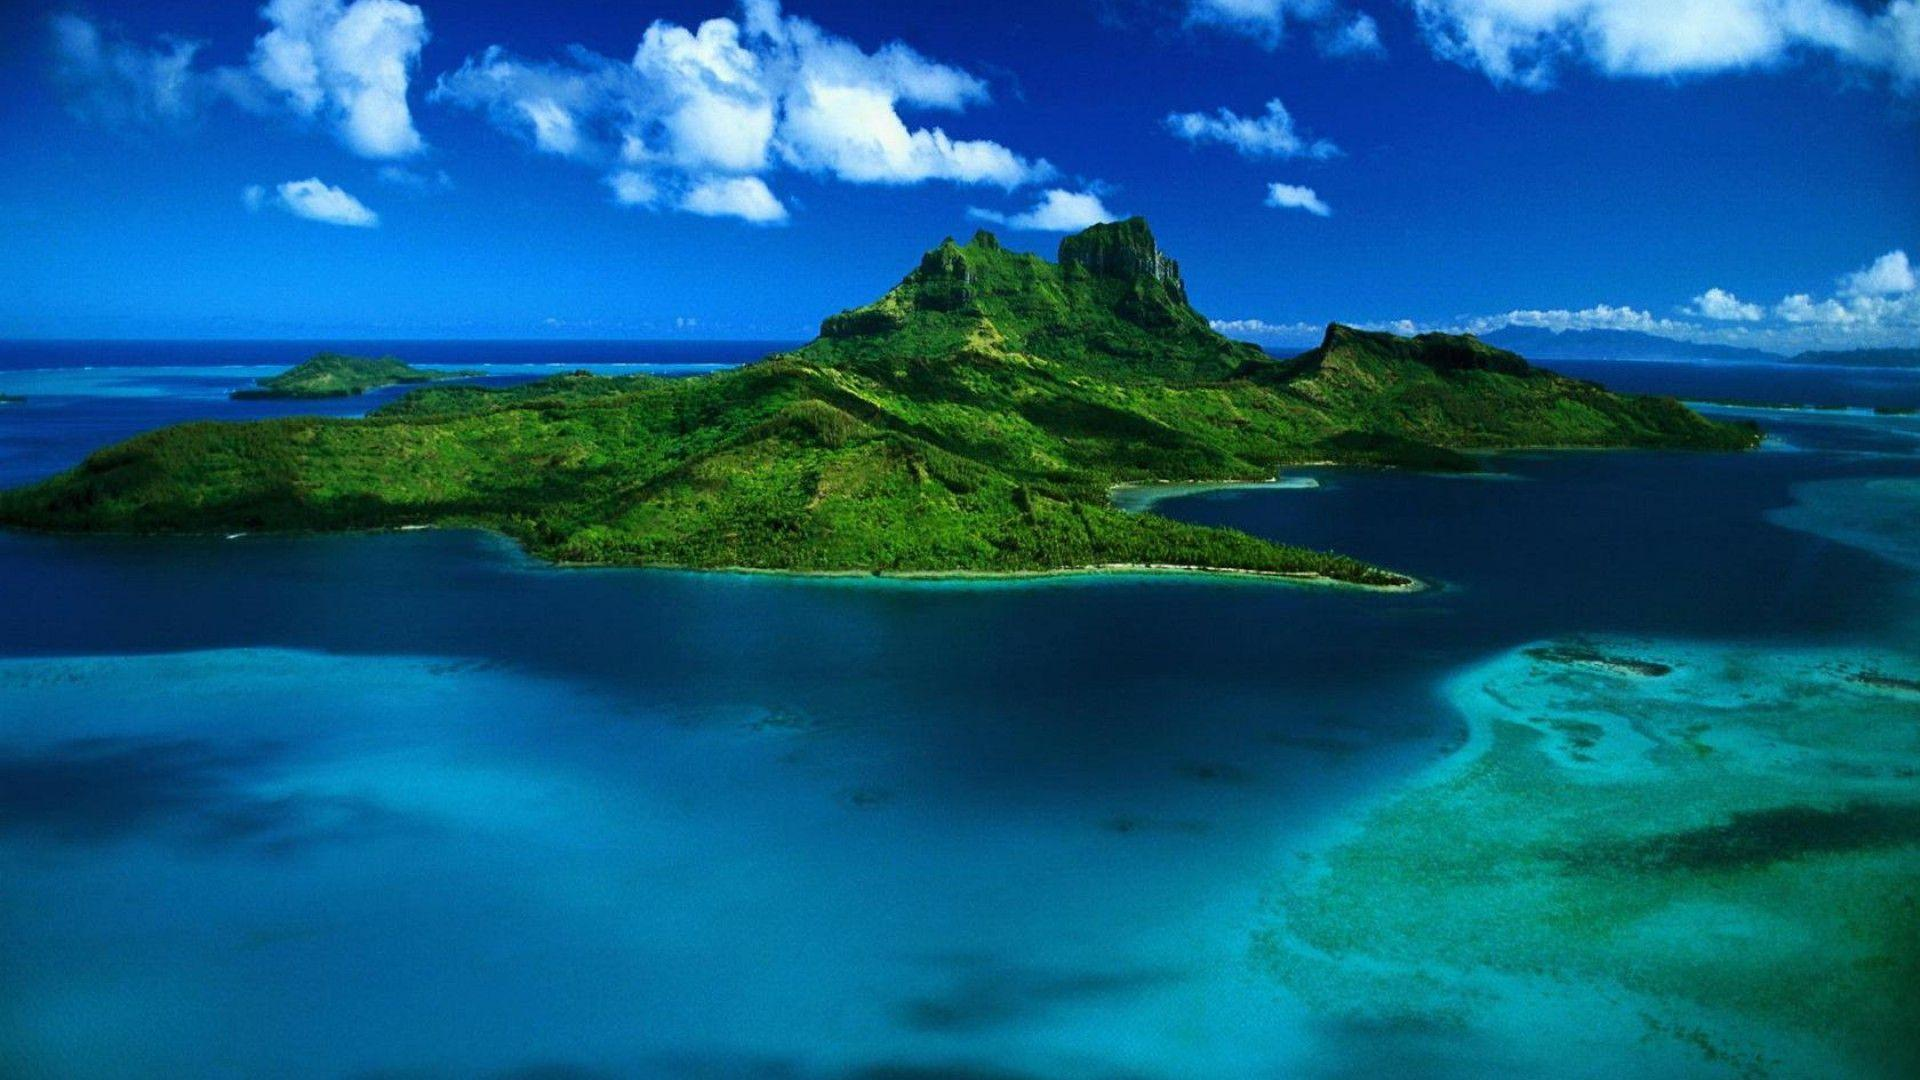 Island Wallpapers   Top Island Backgrounds   WallpaperAccess 1920x1080